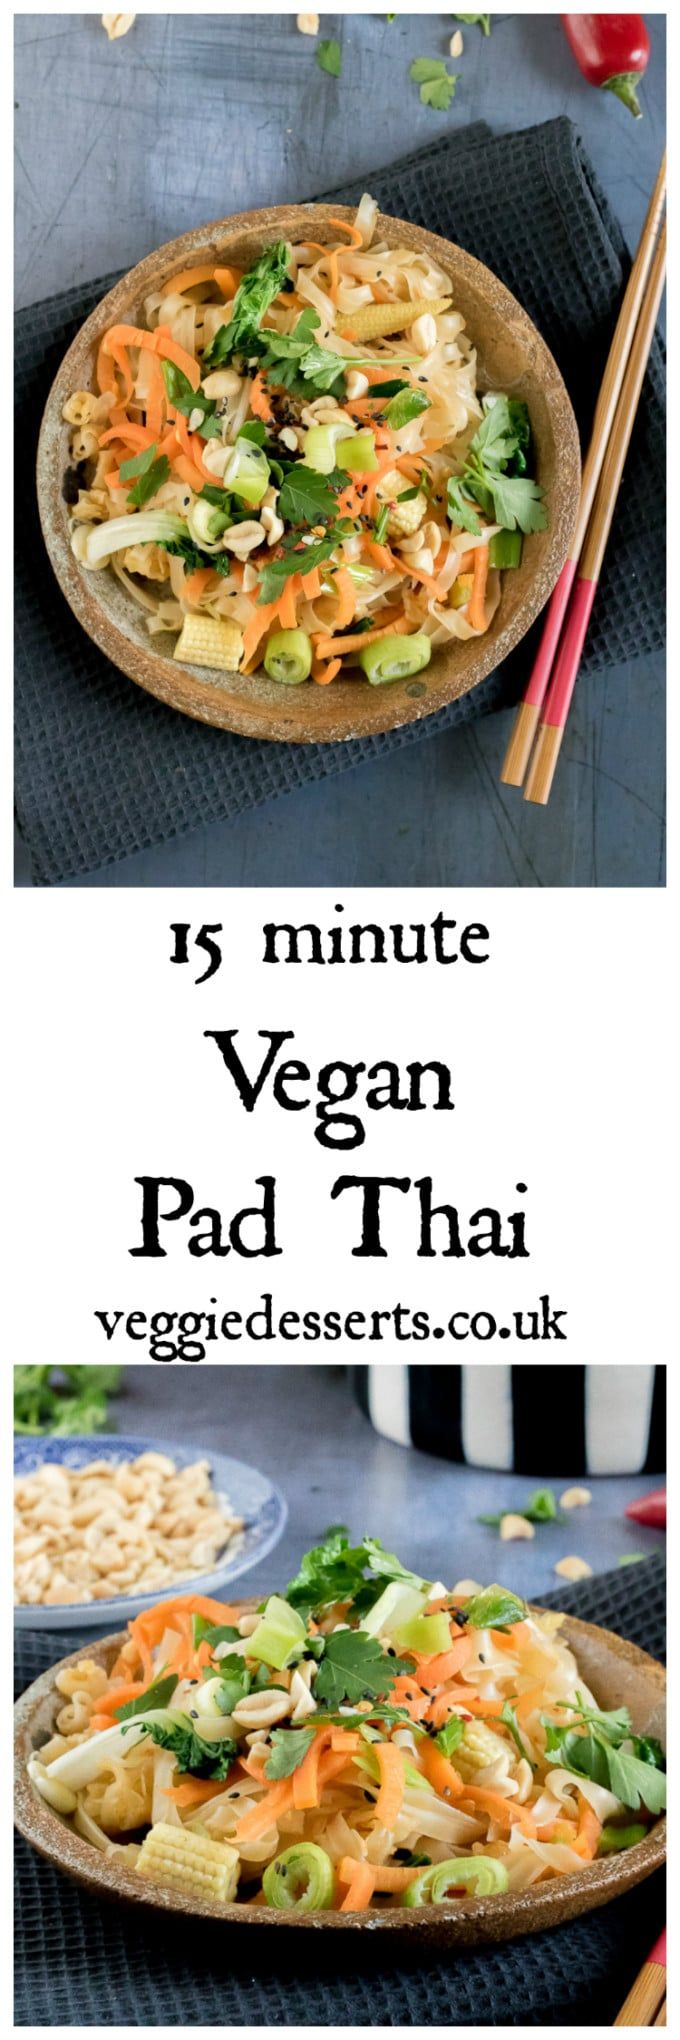 Ready in just 15 minutes, this easy vegan pad Thai is bursting with flavour. It's also gluten free. Veggies, wide rice noodles, ginger, garlic, chilli and lime juice all combine into a fragrant and tasty dish. #padthai #vegan #veganrecipes #15minutemeals #midweekmeals #recipe  via @katehax